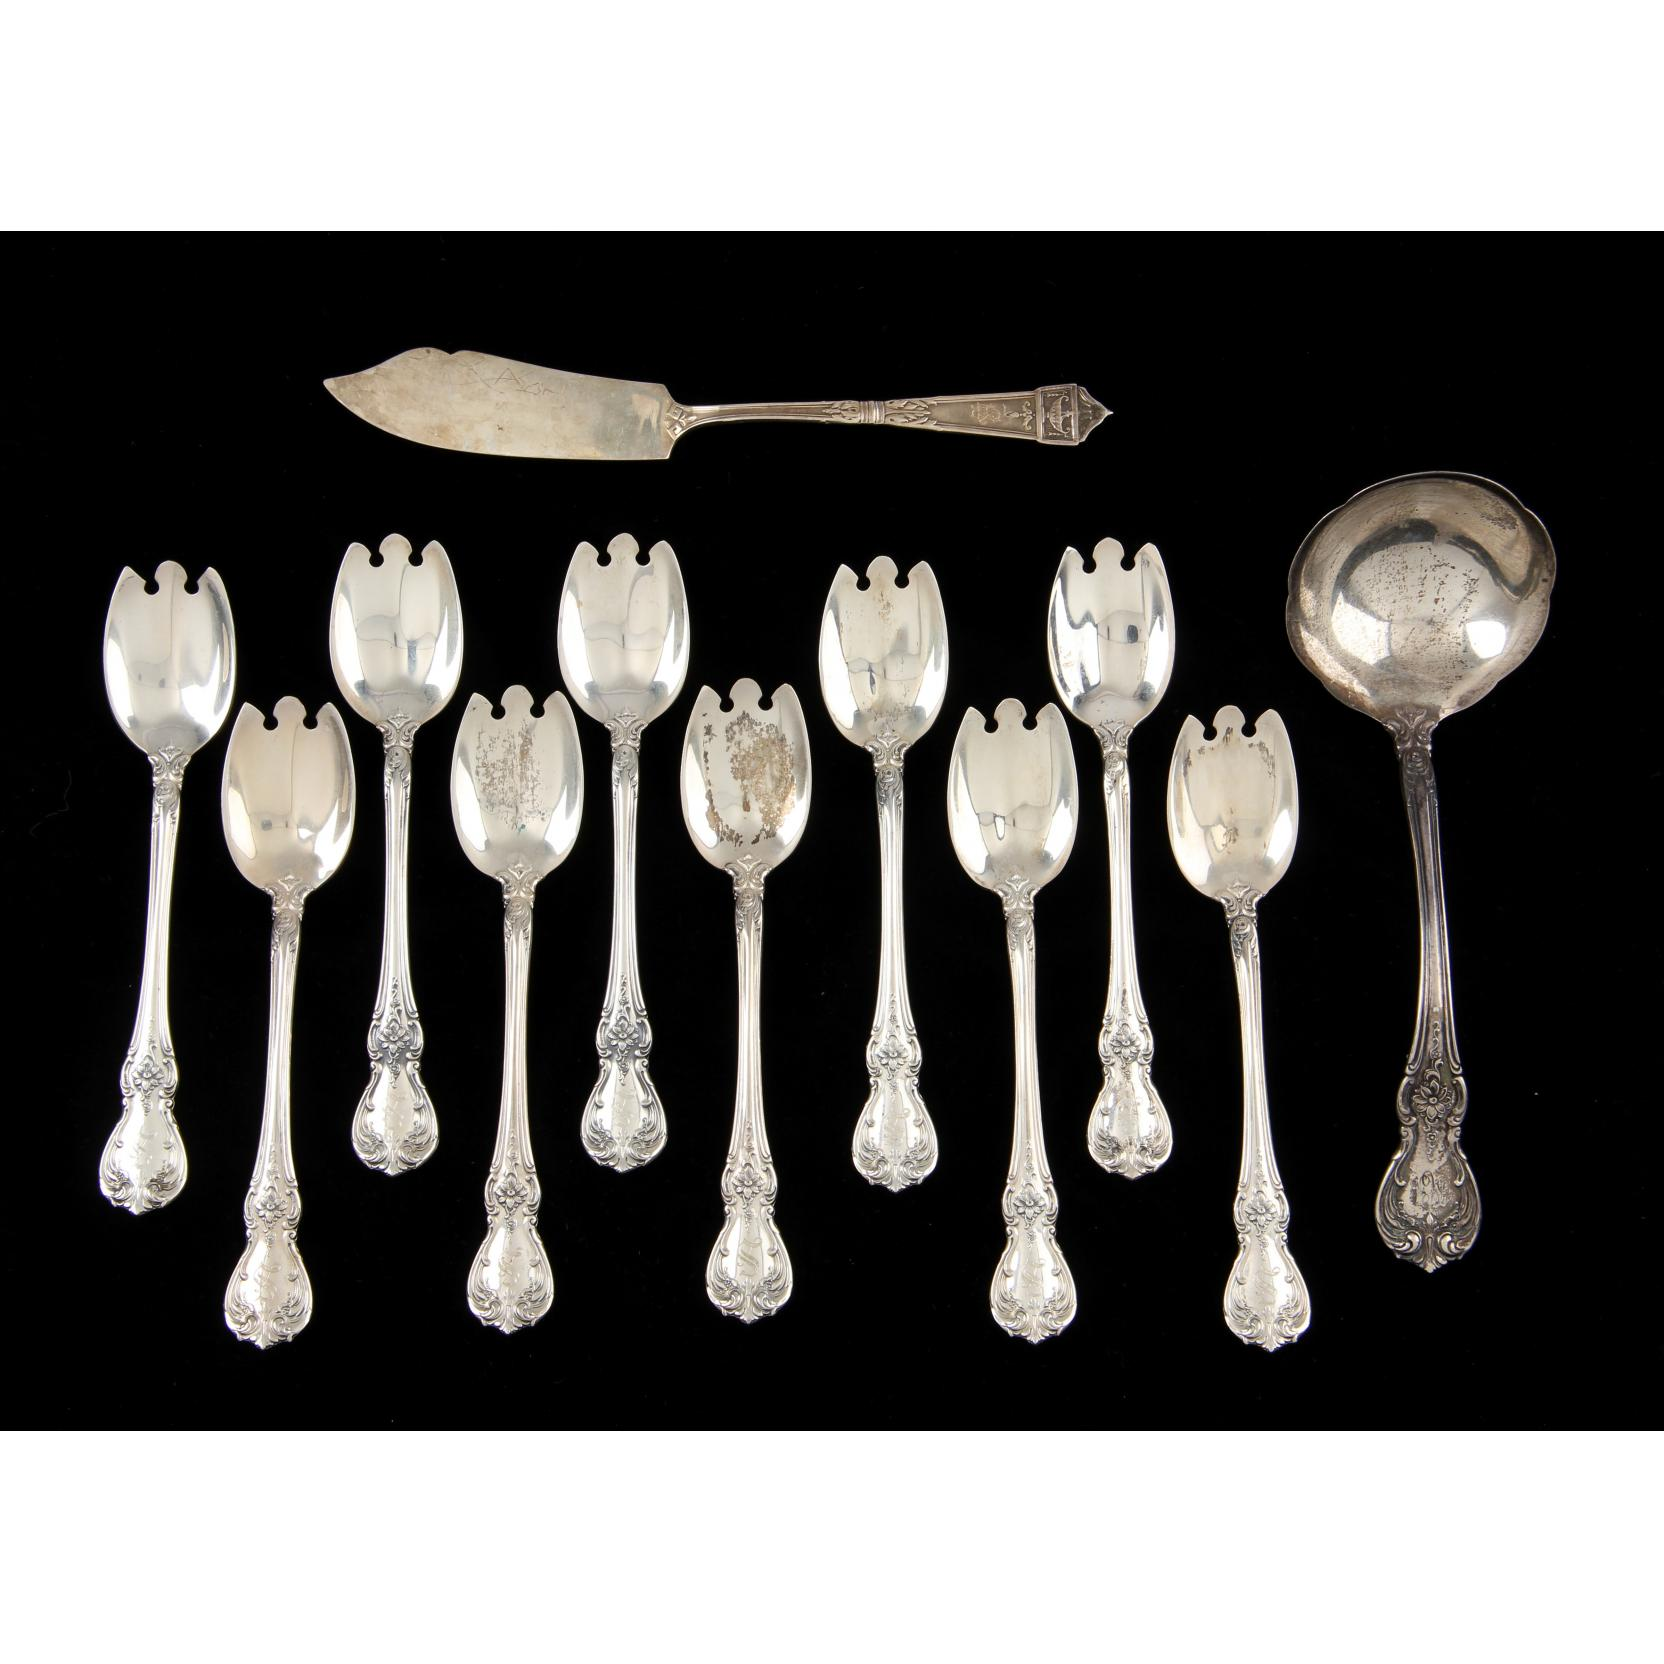 towle-old-master-sterling-silver-flatware